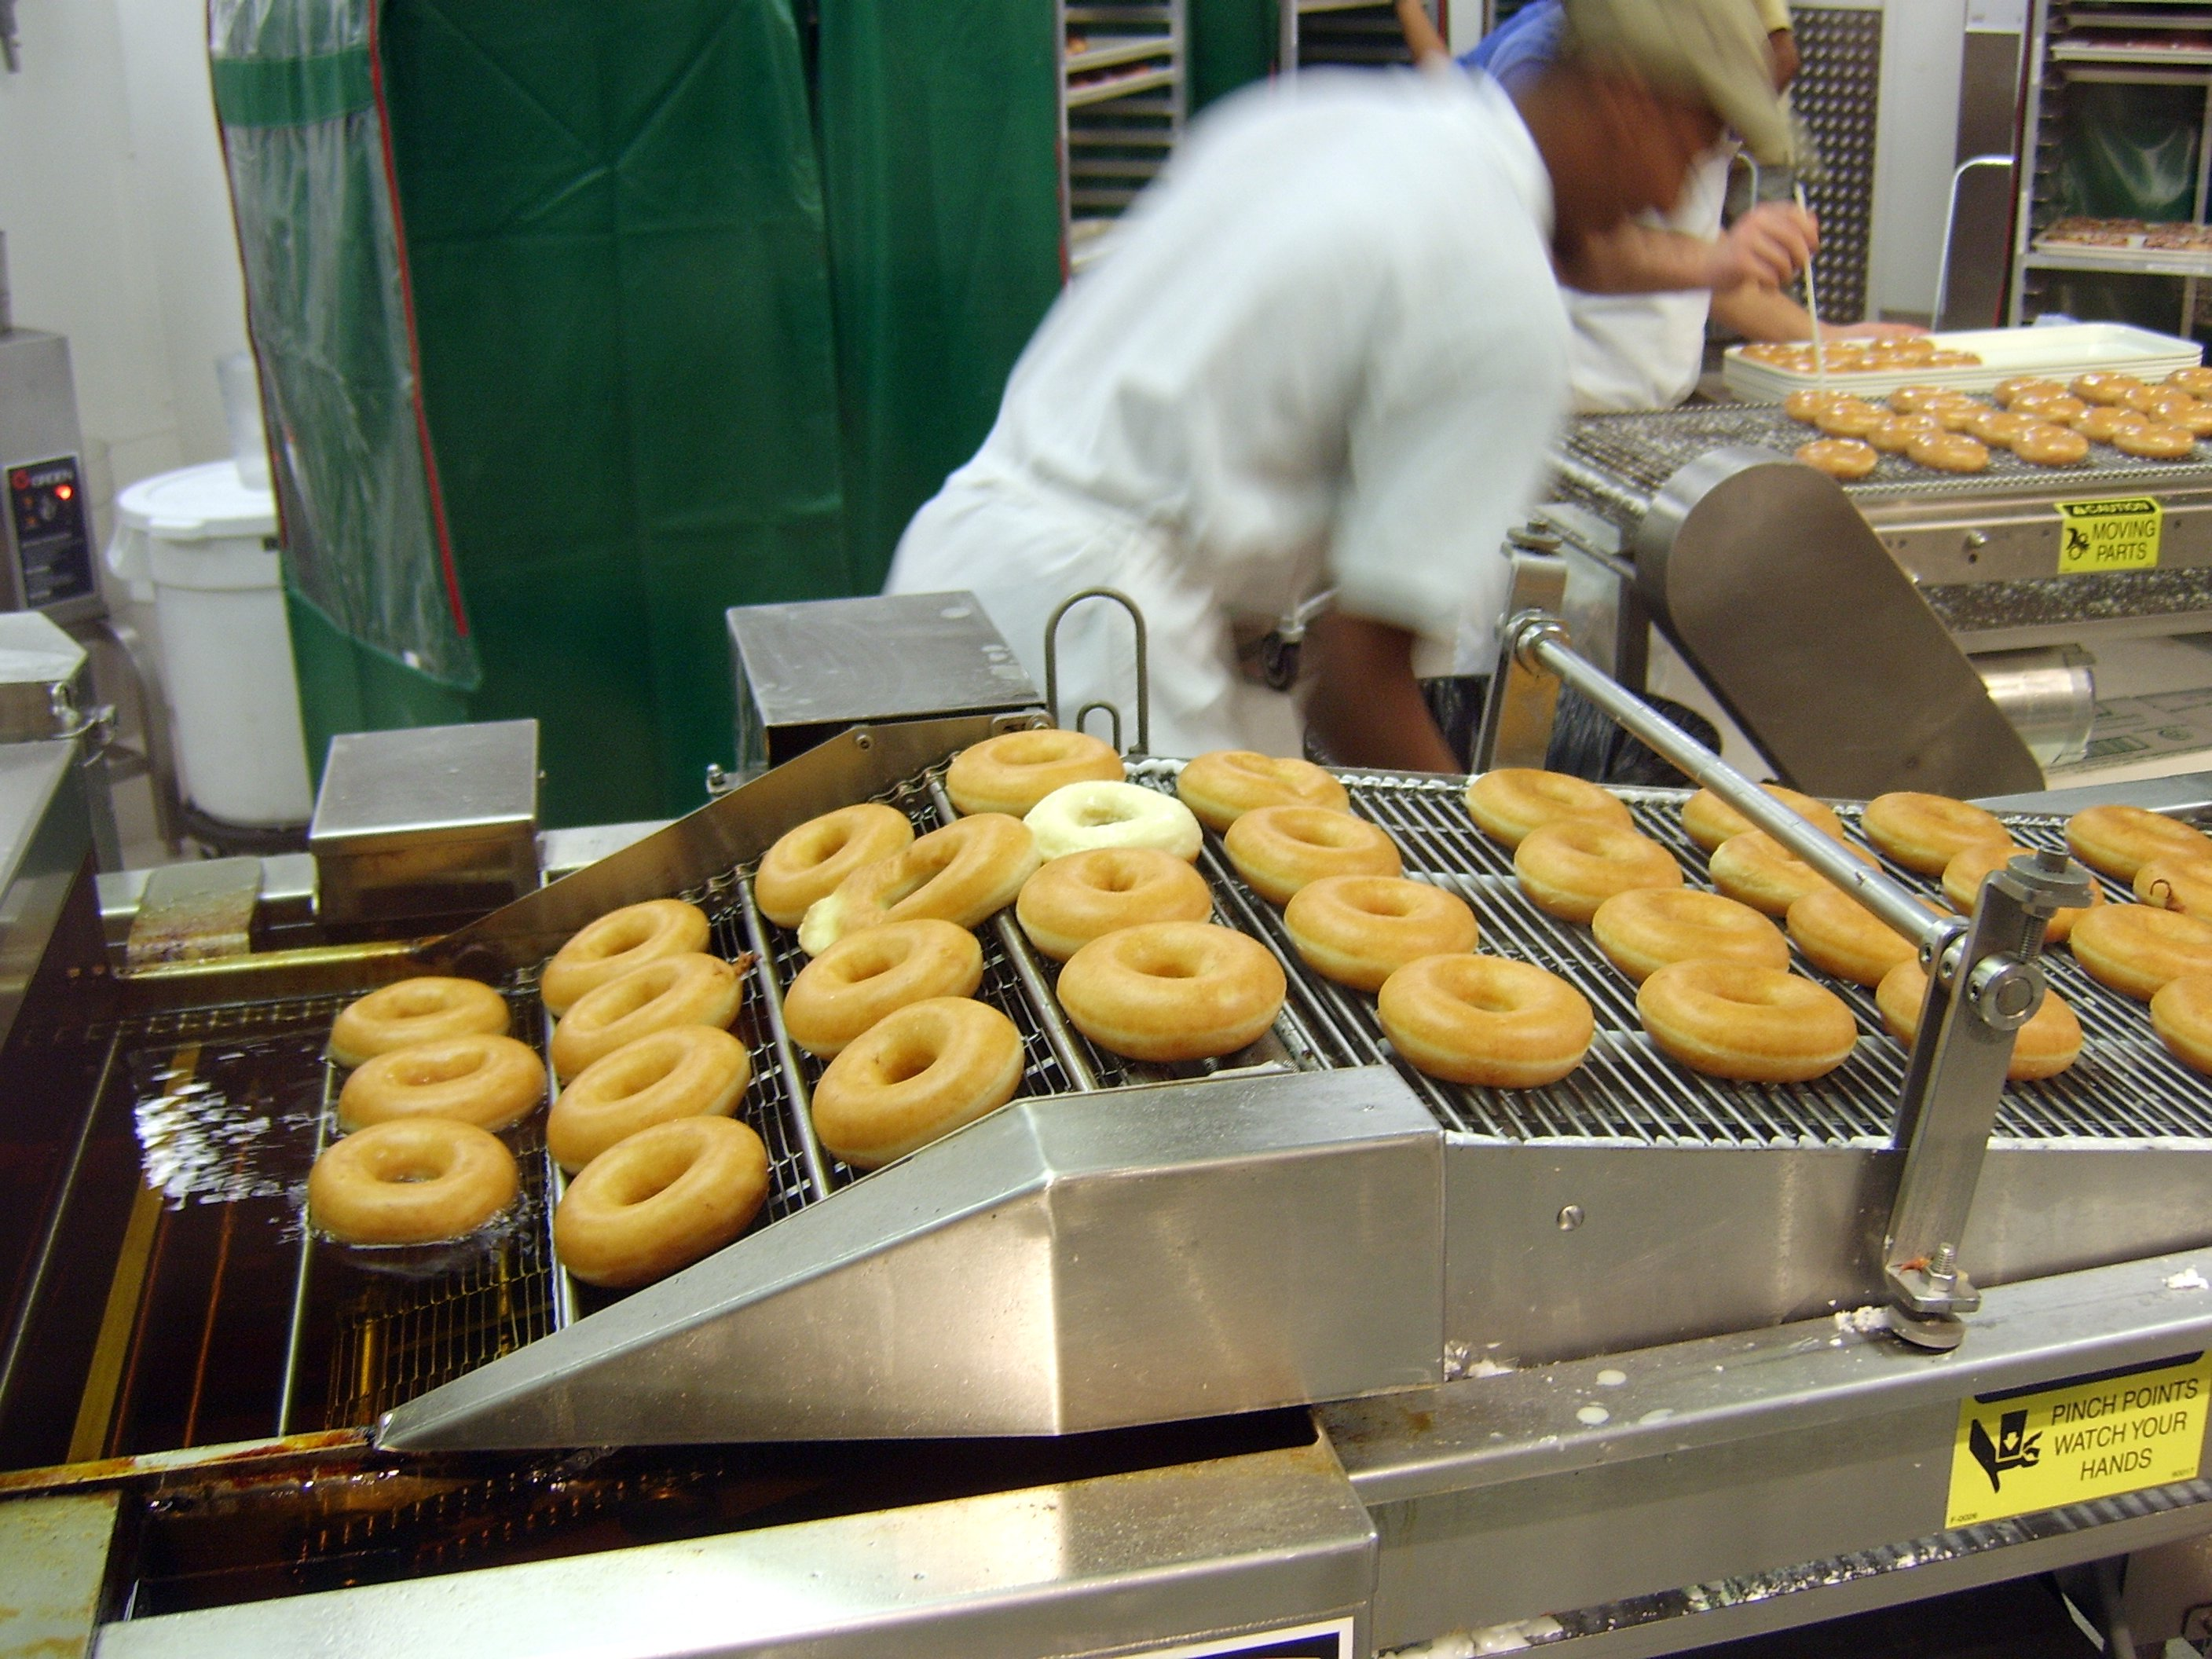 Photo cred: Krispy Kreme donuts, Wikipedia.